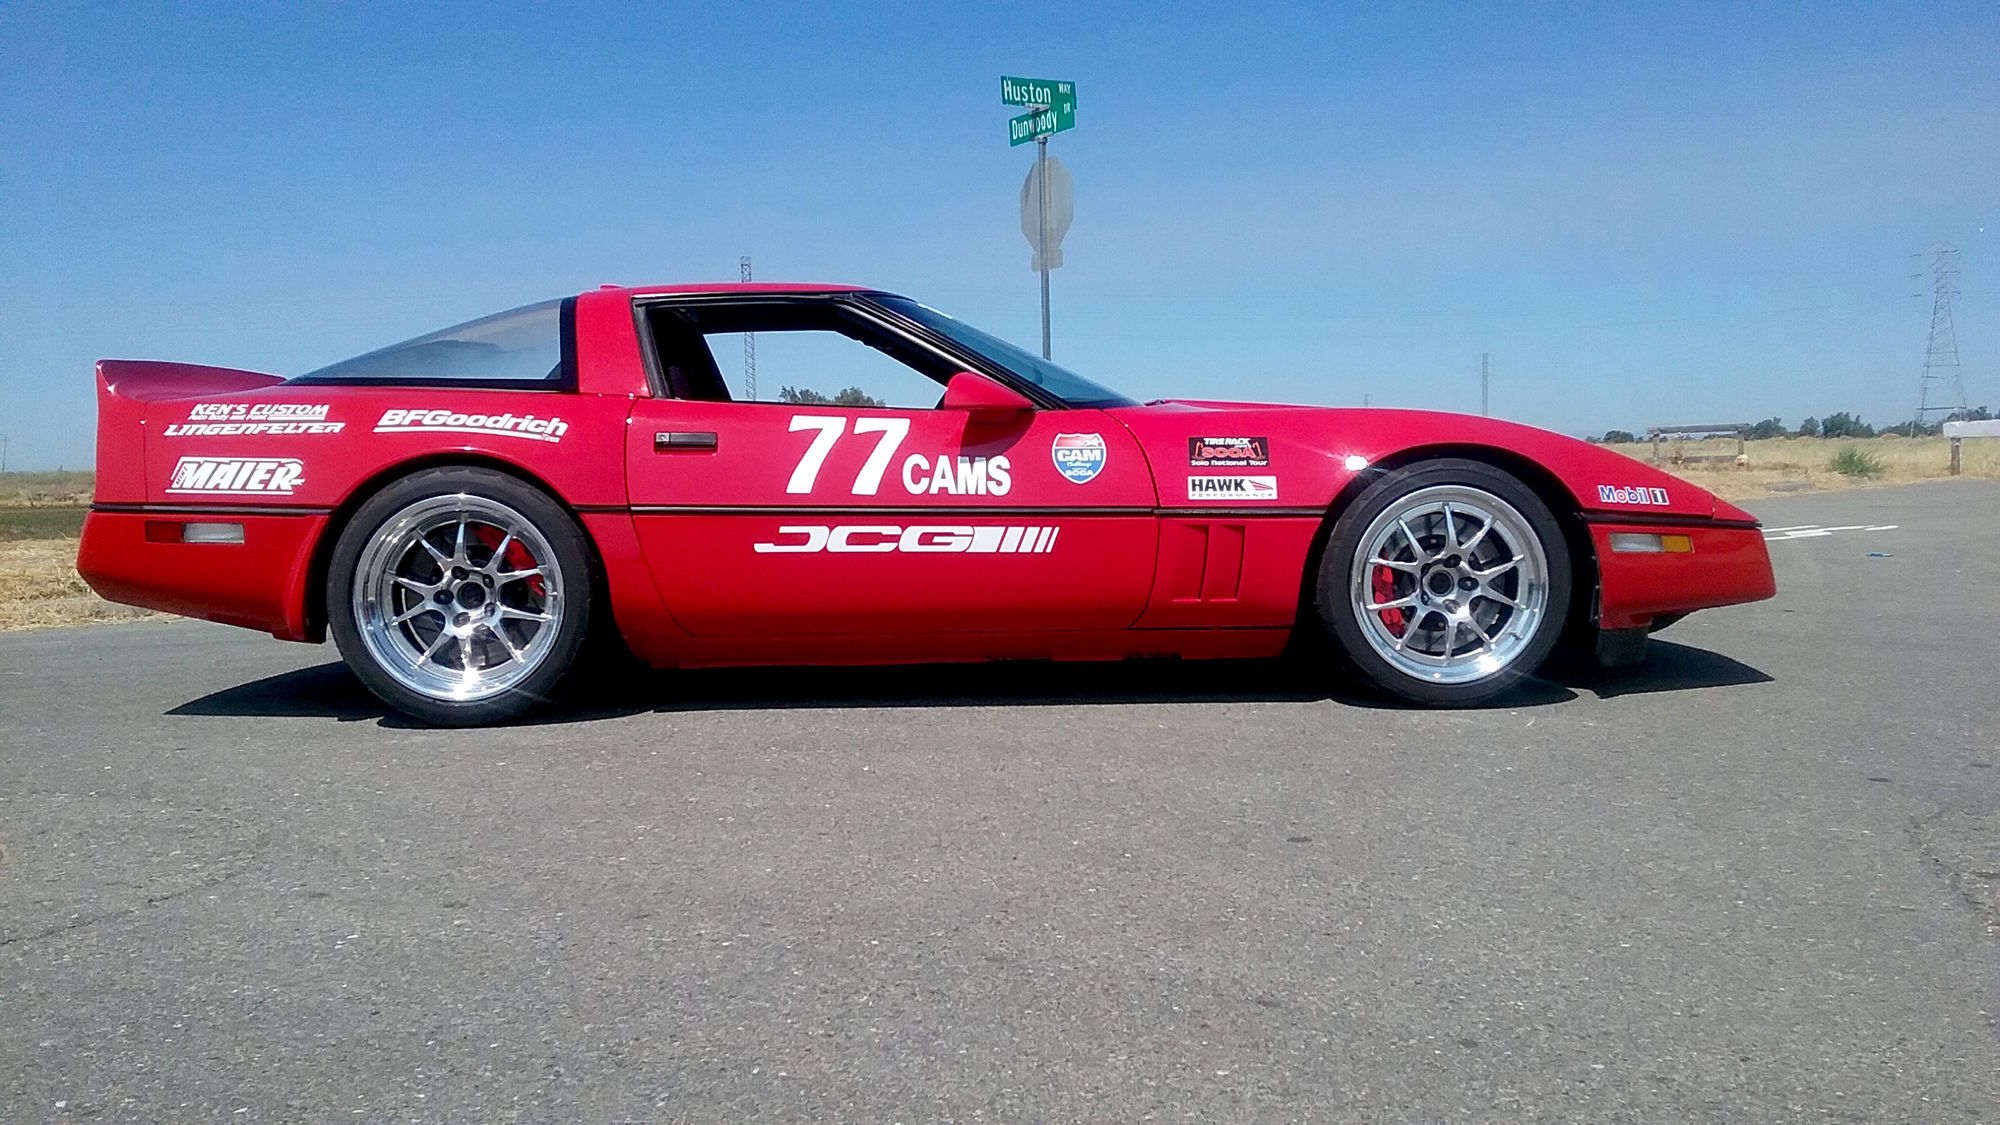 1989 Chevrolet Corvette | Kenny Mitchell's '89 Corvette on Forgeline GA3R Wheels